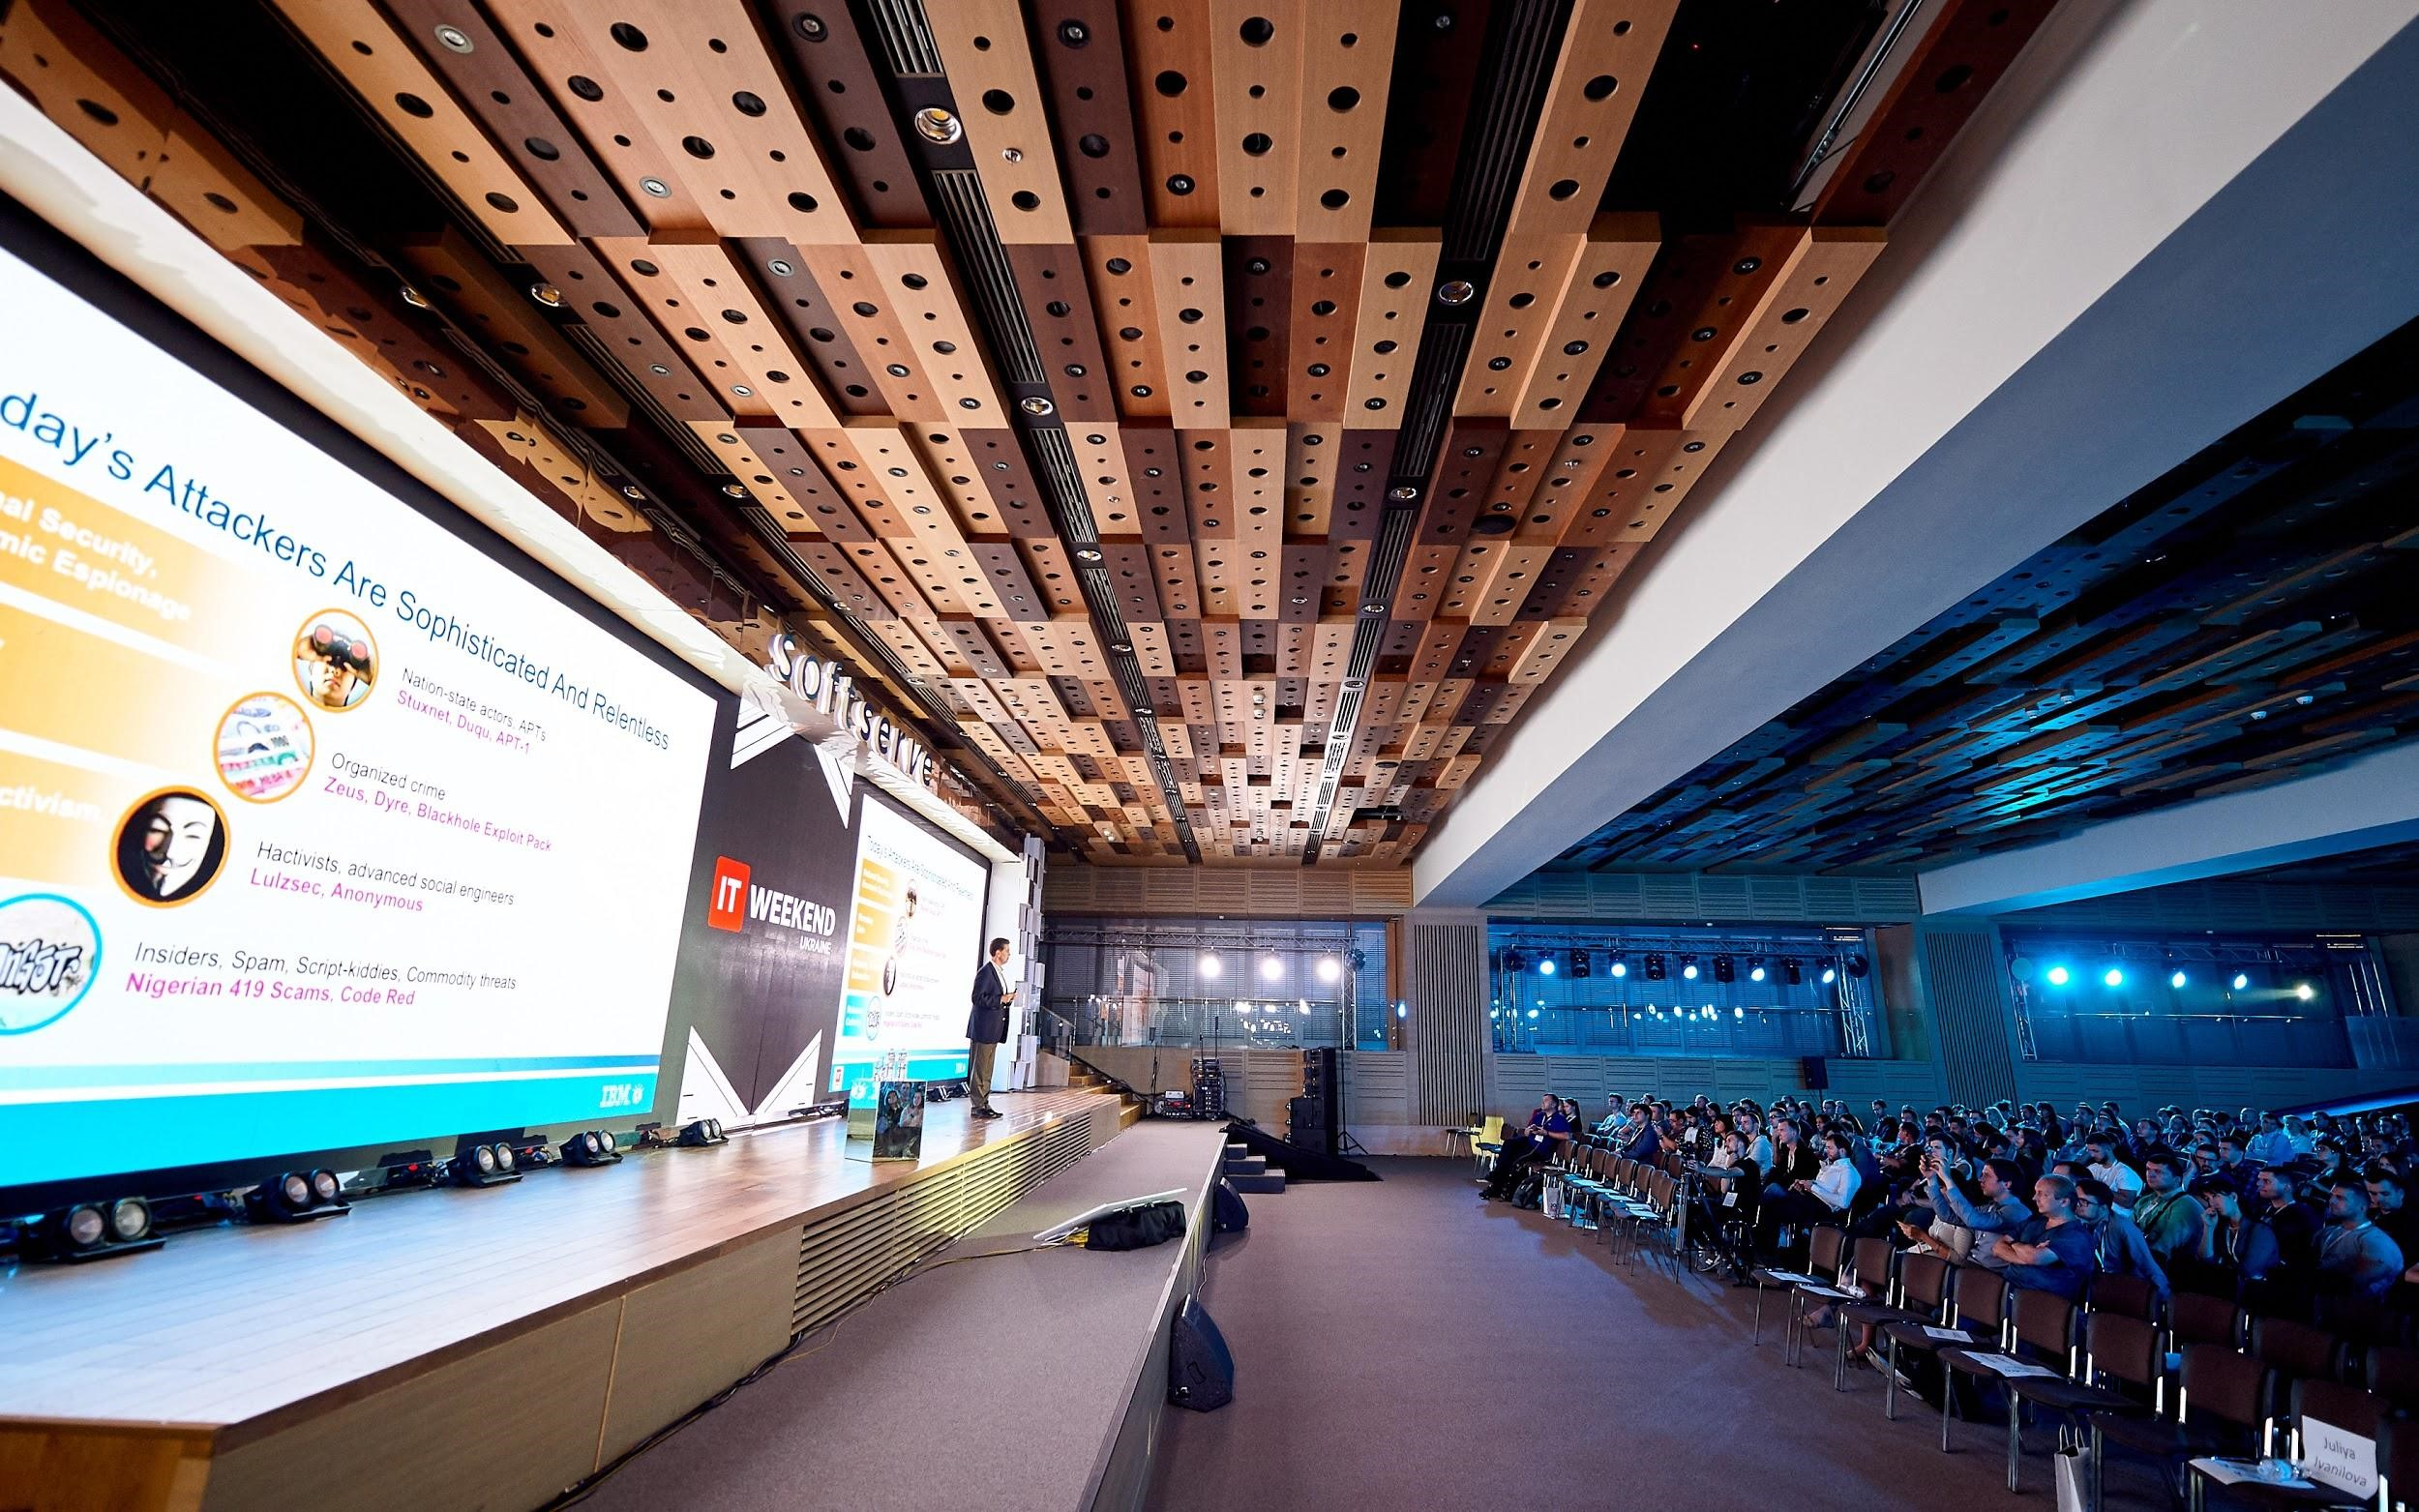 6 IT Weekend Ukraine 2017: the Future of Robots and Machines